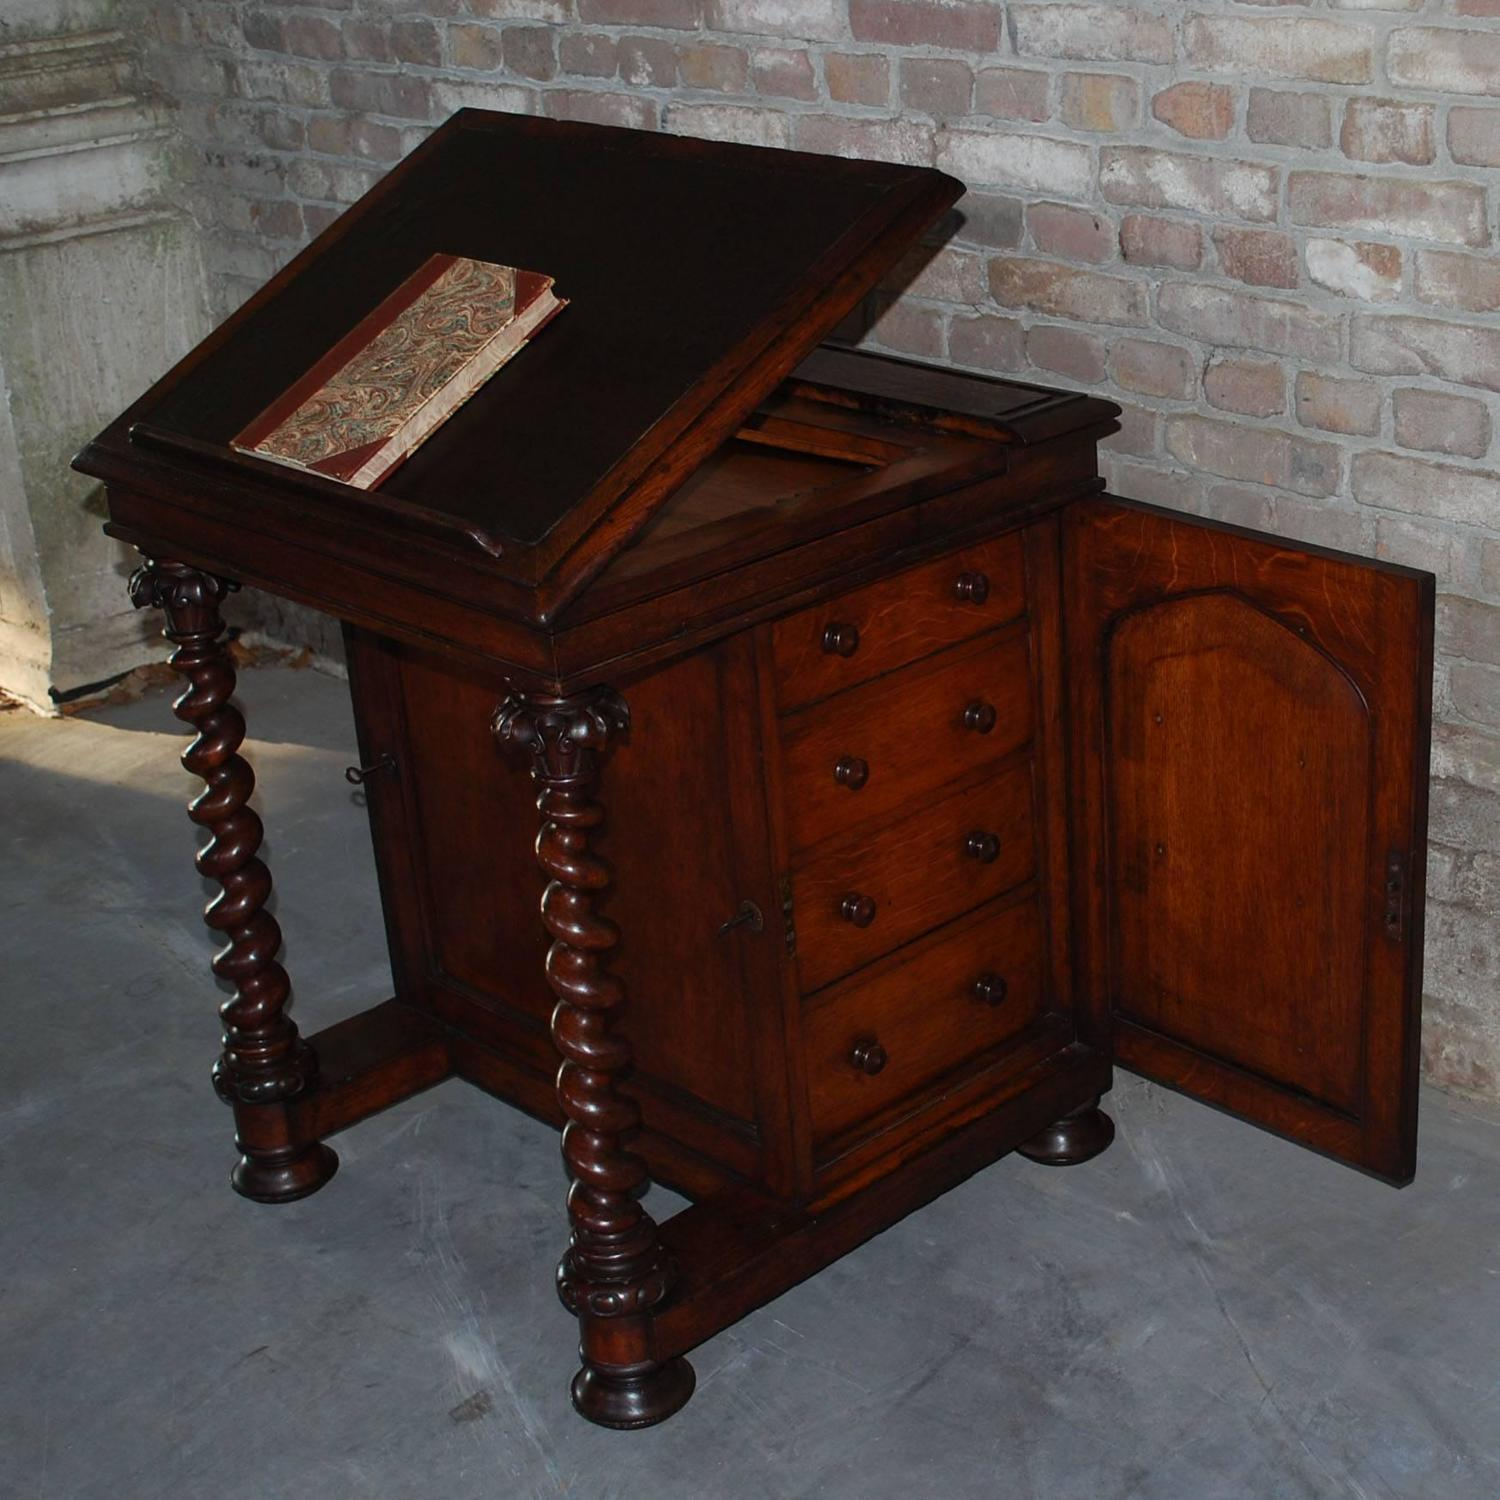 19th Century Oakwood Lectern Made By Robert Strahan For Sale At 1stdibs